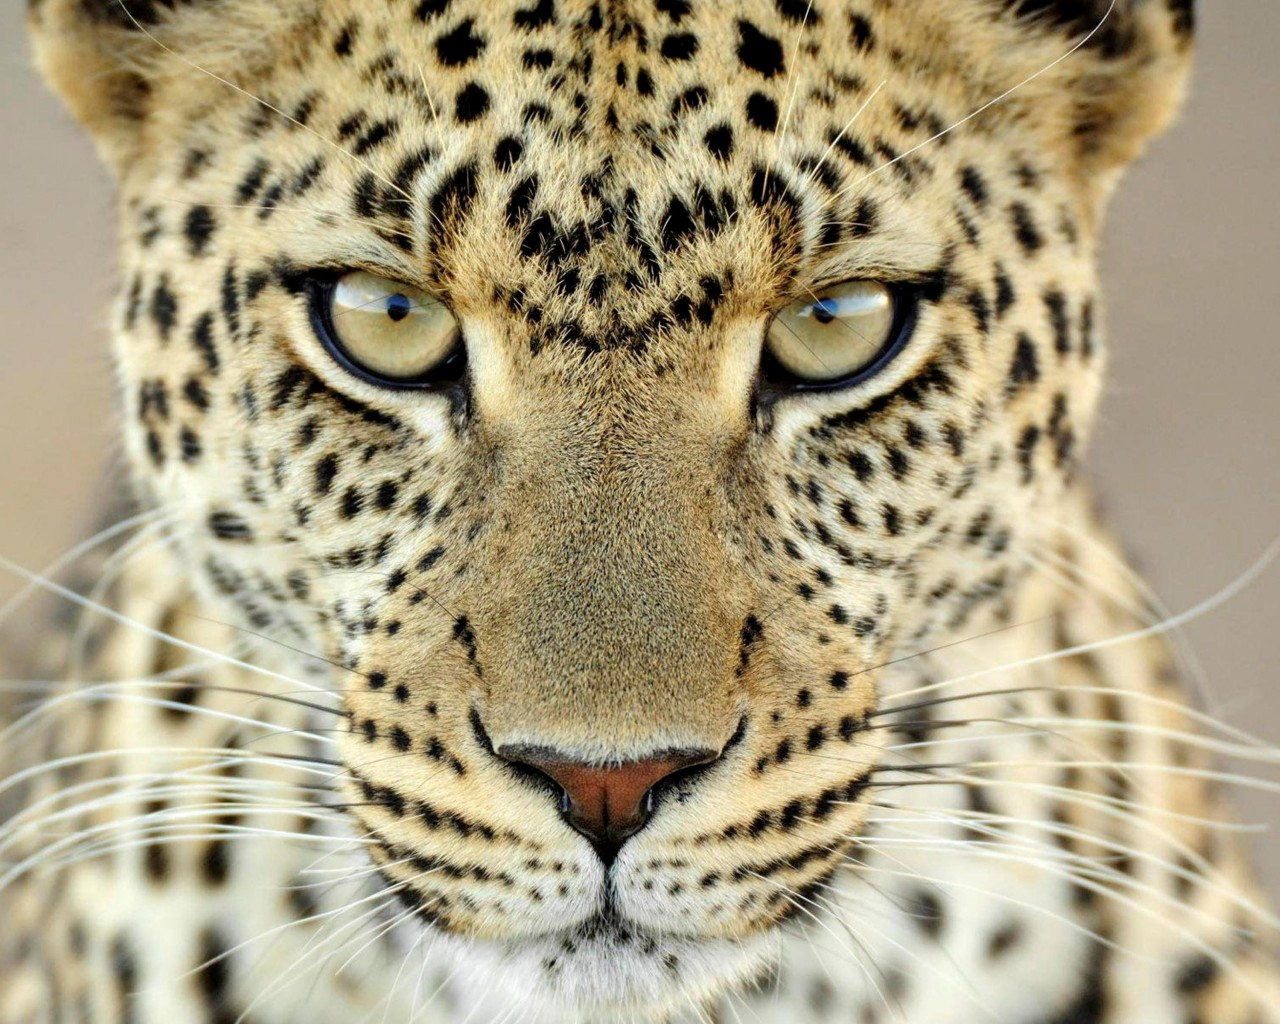 wild animals wallpapers desktop animal quality latest background leopard crazy wildlife cheetah nature cool beast wall leopardo colors cute peaceful